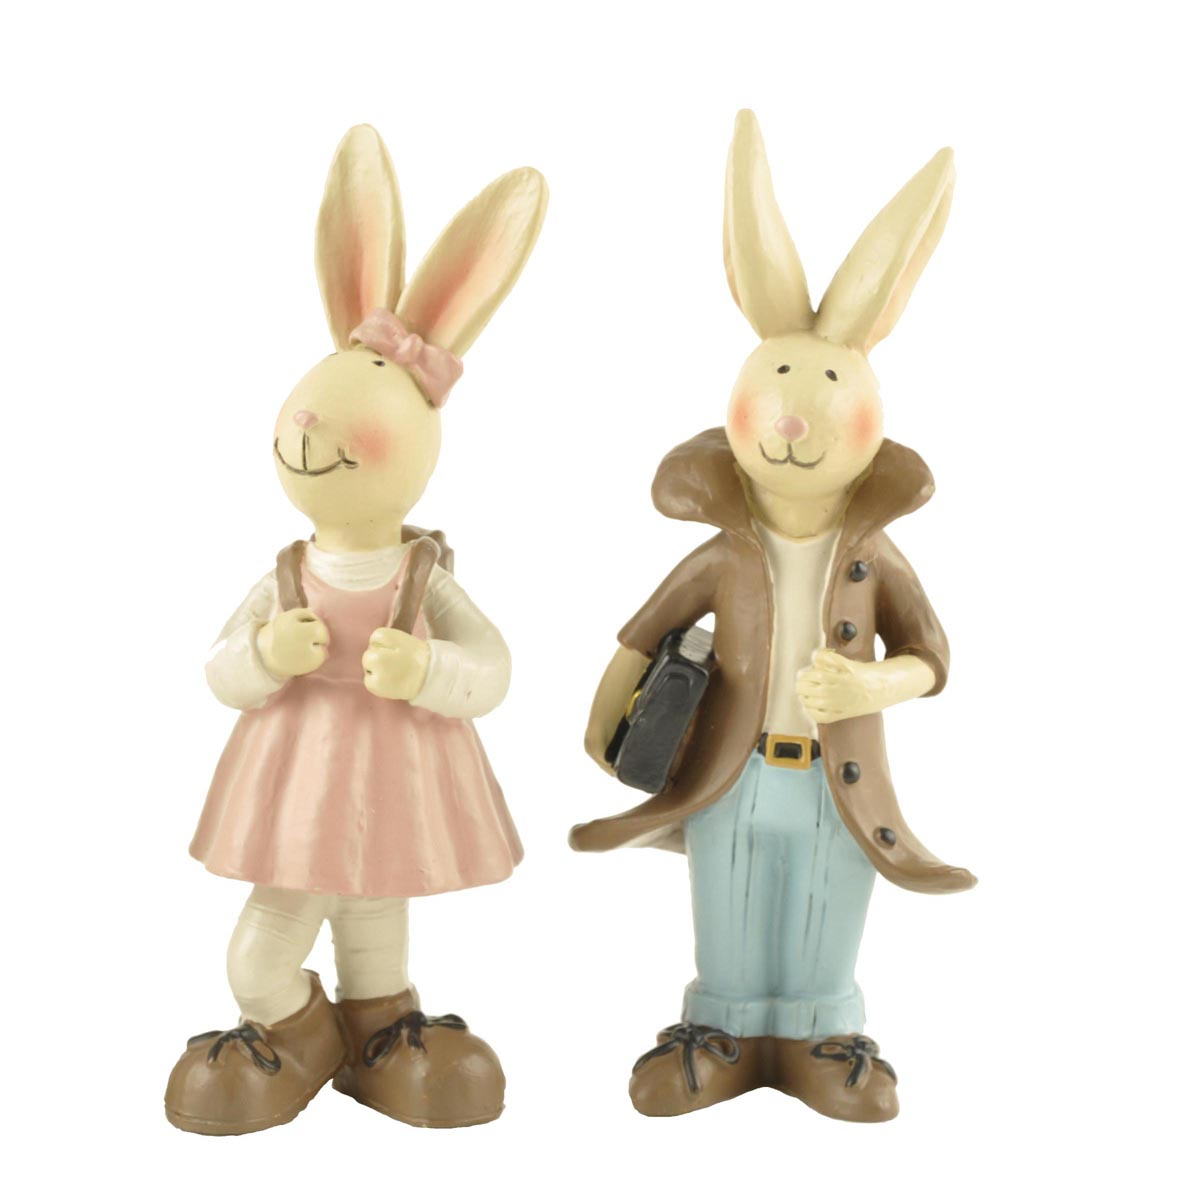 Ennas decorative easter figurines for holiday gift-1